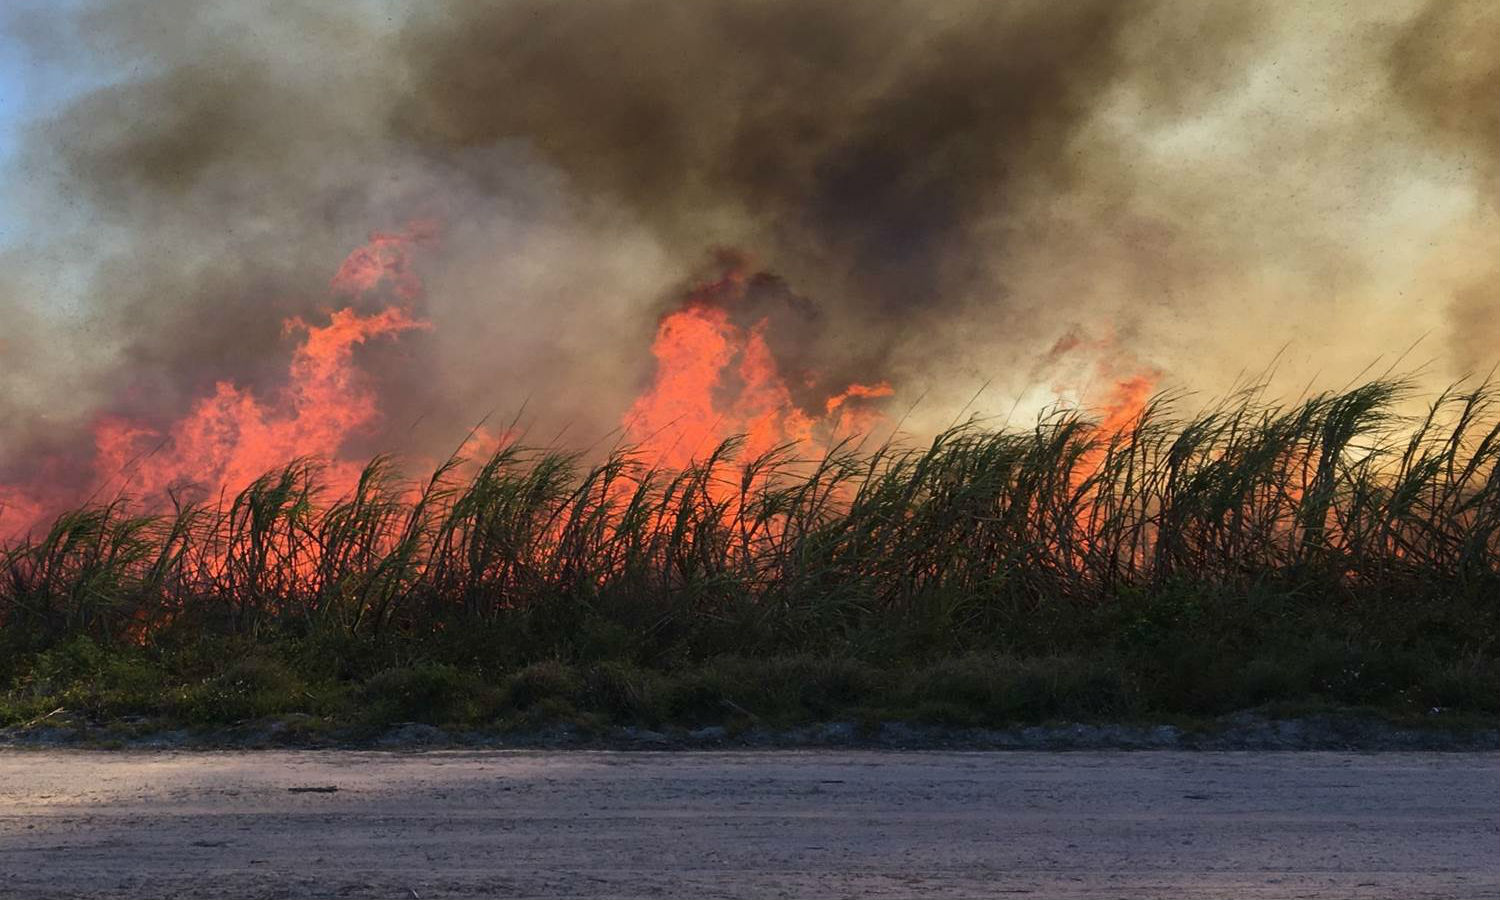 Florida sugar faces growing pressures from a pending lawsuit and environmental activists for outdated preharvest practice of sugar field burning.